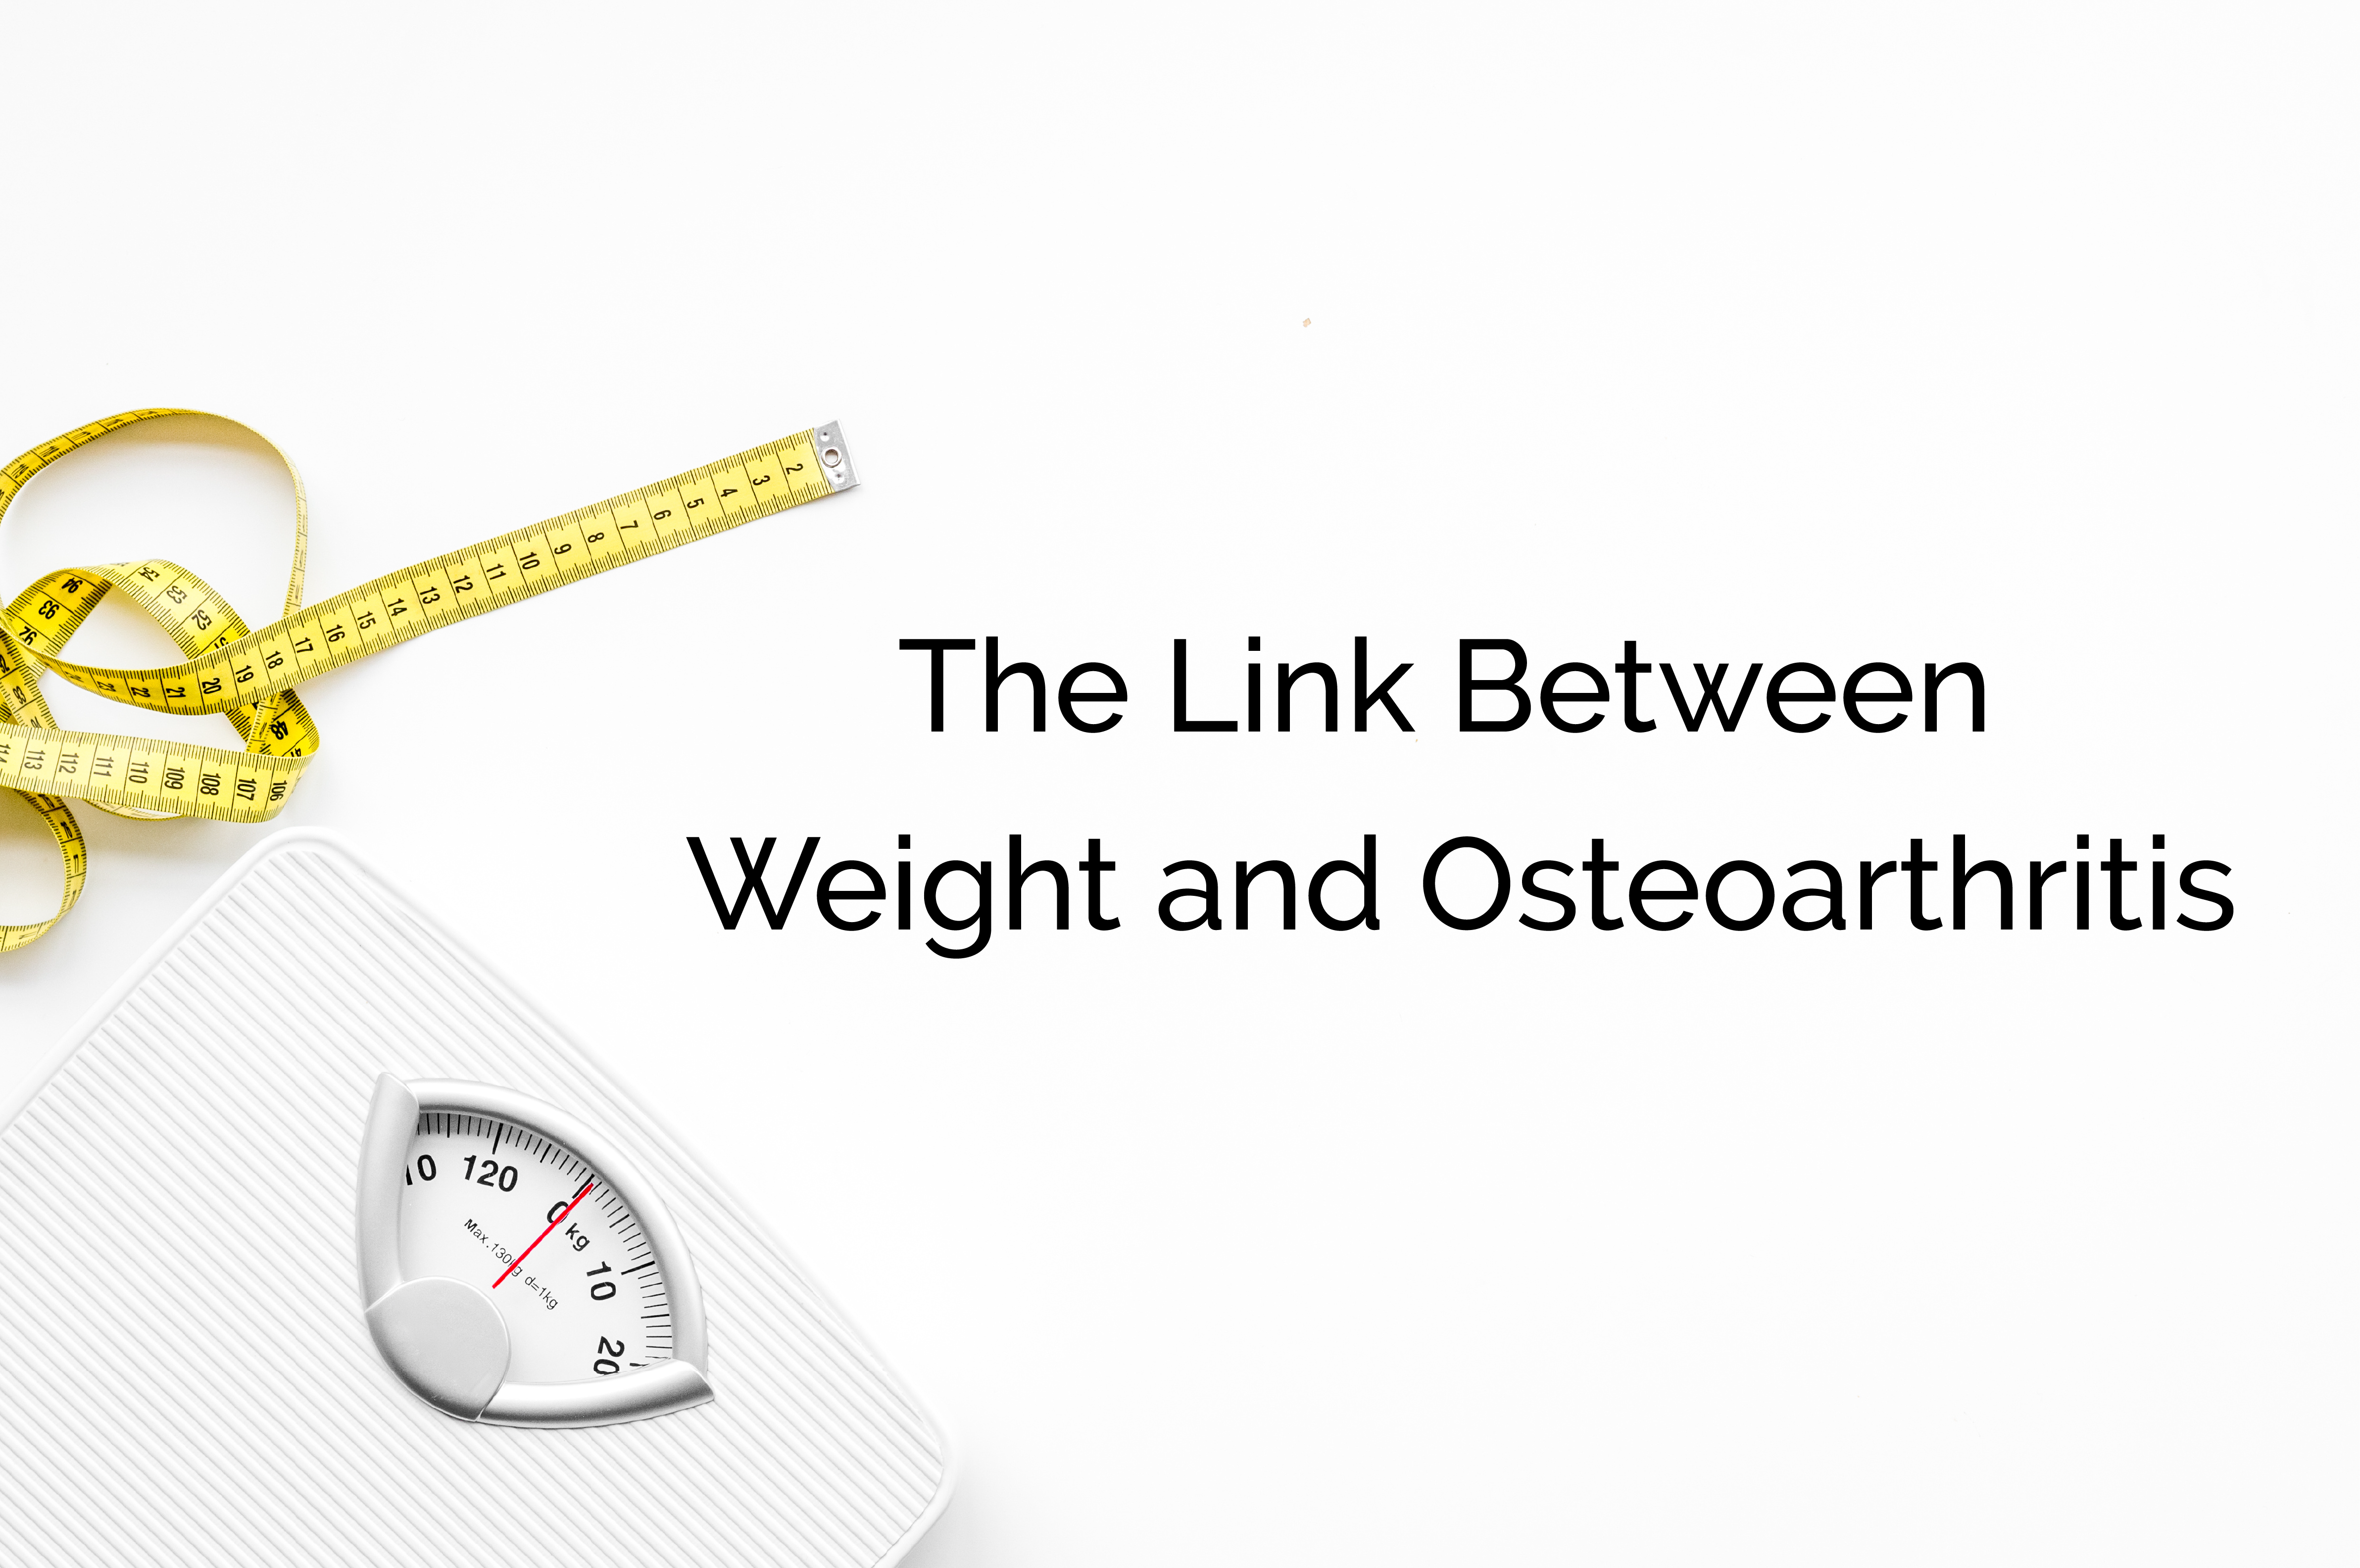 The Link Between Weight and Osteoarthritis